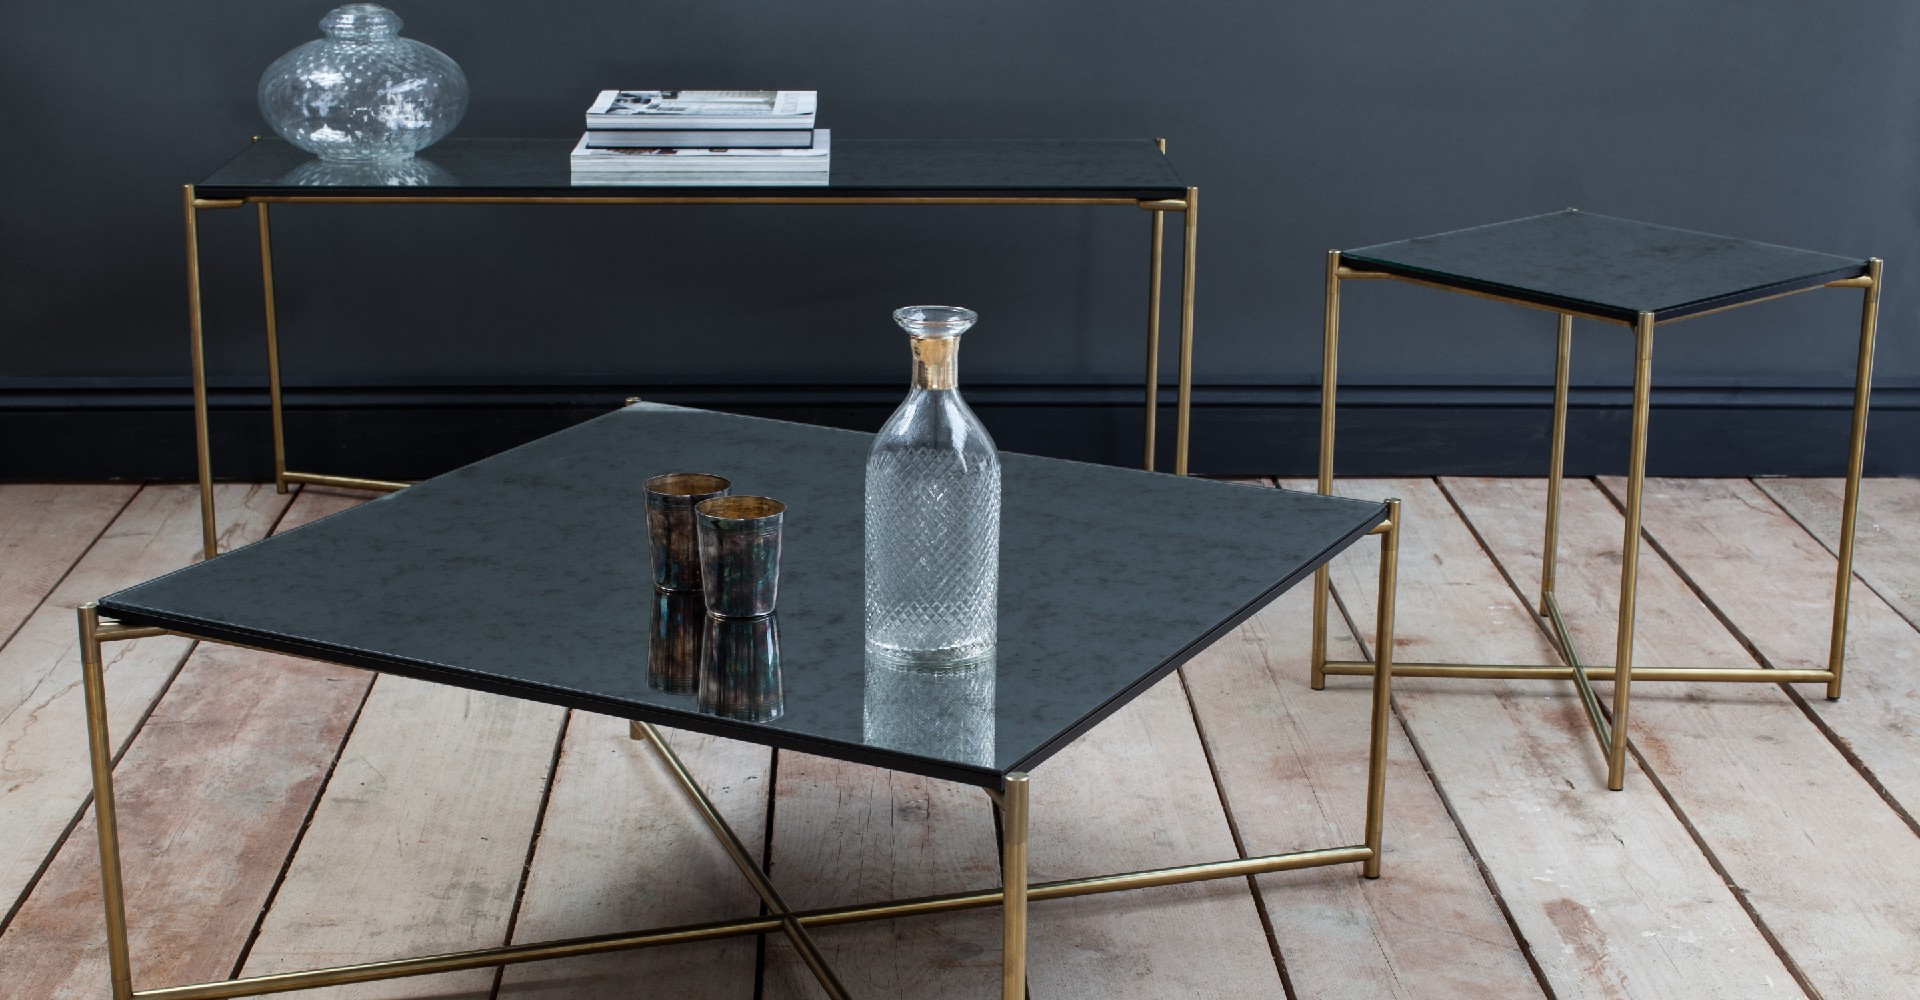 Iris Antique Glass tables And Brushed Brass Tables by Gillmore © GillmoreSPACE Ltd